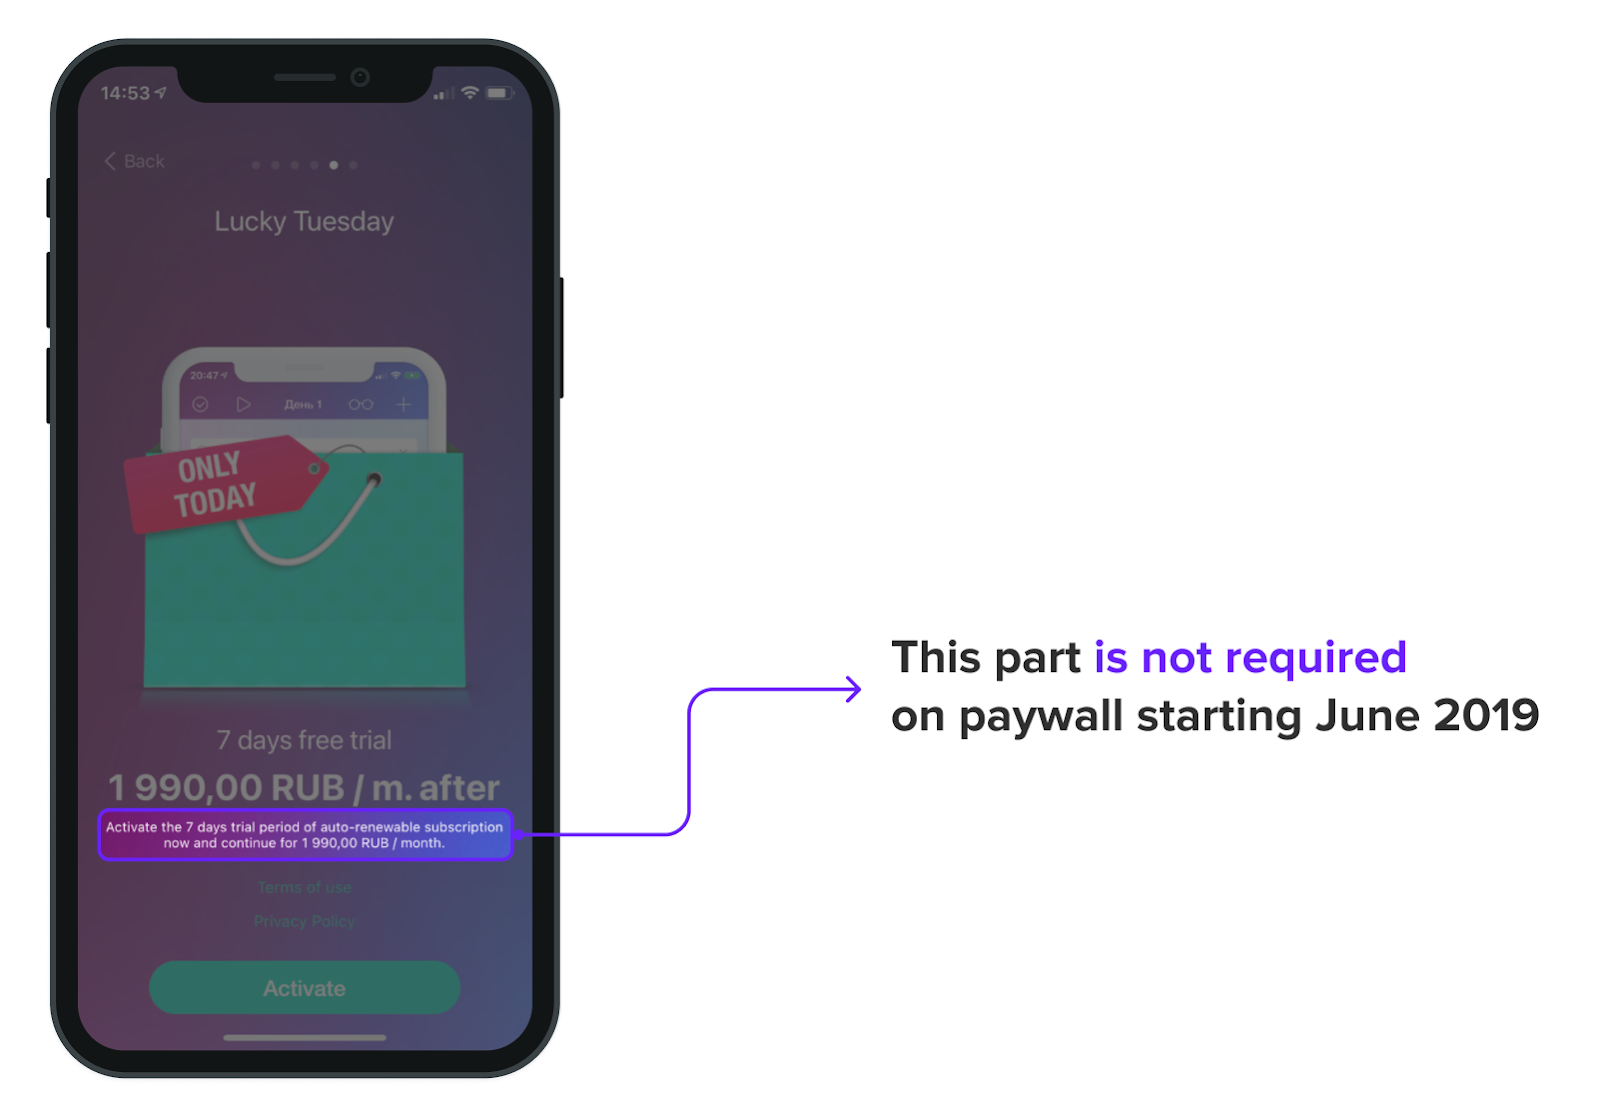 Part that isn't required by Apple on paywalls starting June 2019